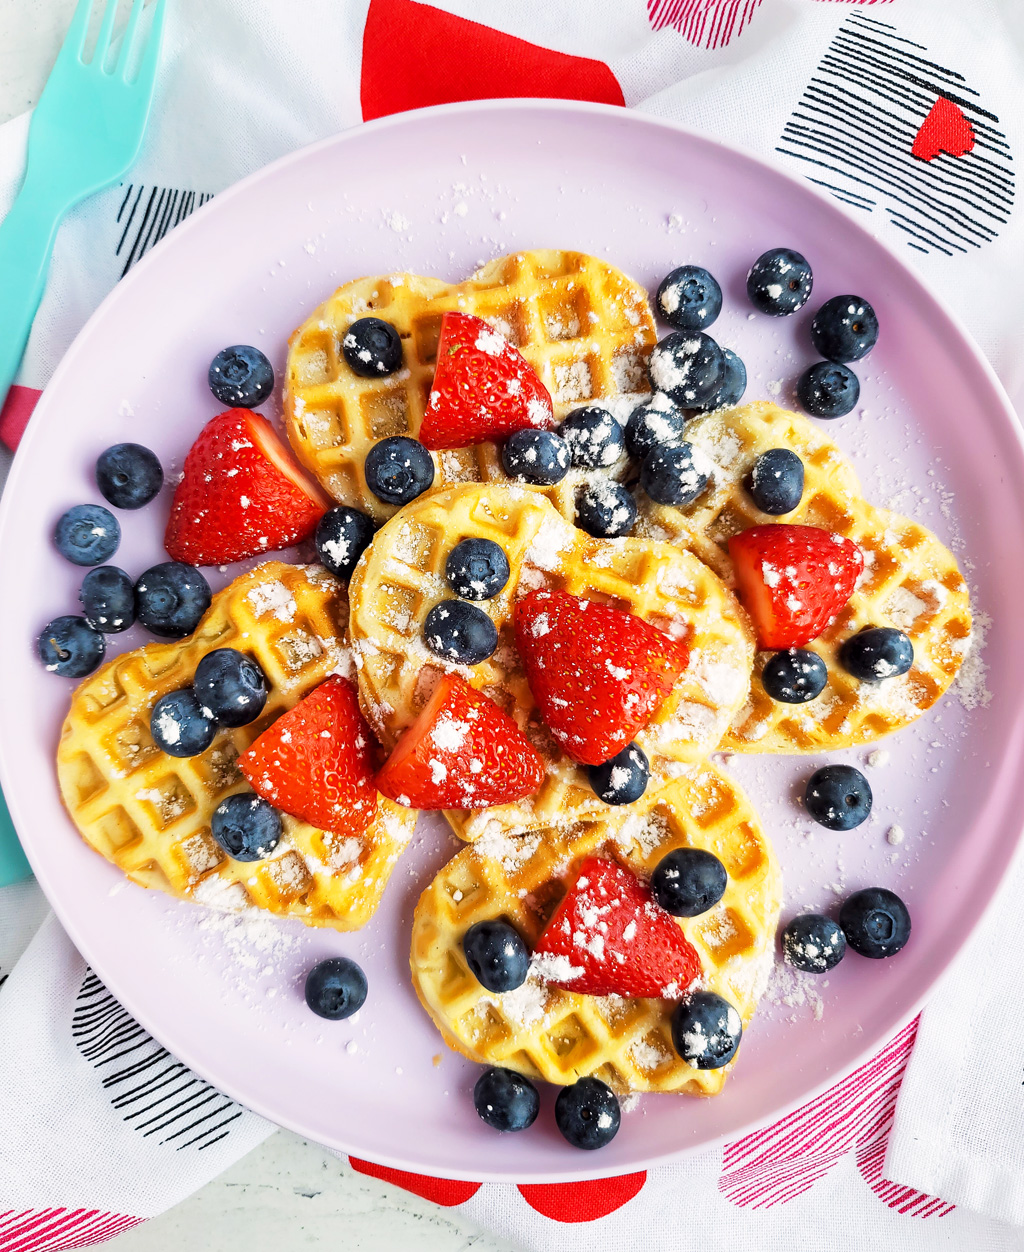 These Berry Yummy Mini Heart Waffles make the perfect Valentine's Day breakfast! So light and airy… and topped with delicious blueberries and strawberries.